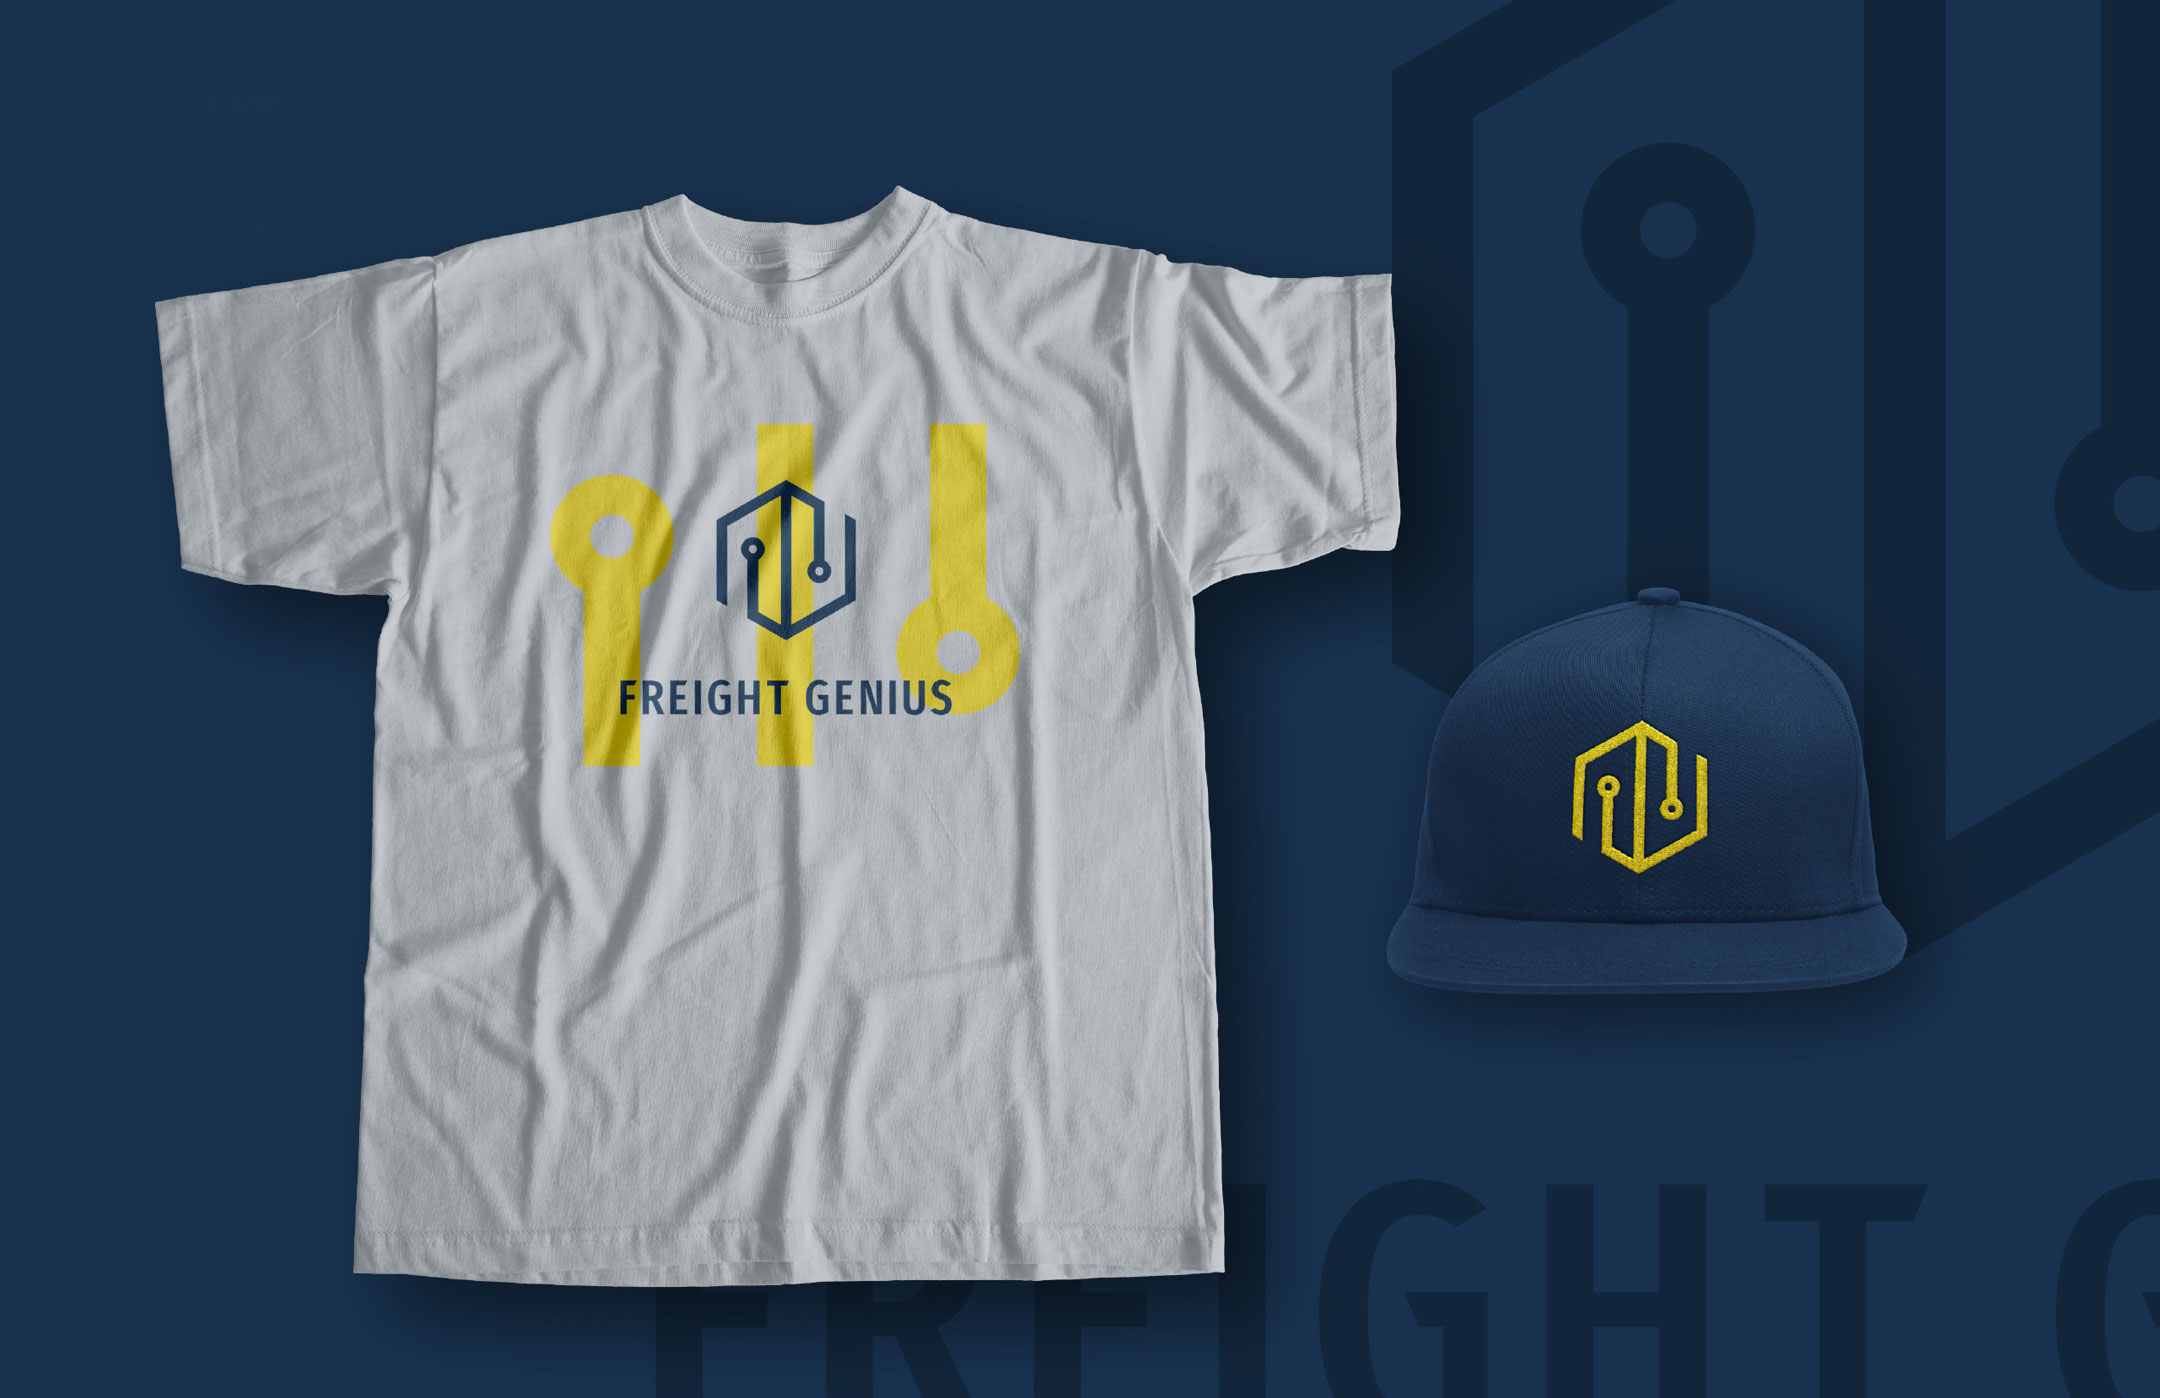 freight genius tshirt and hat